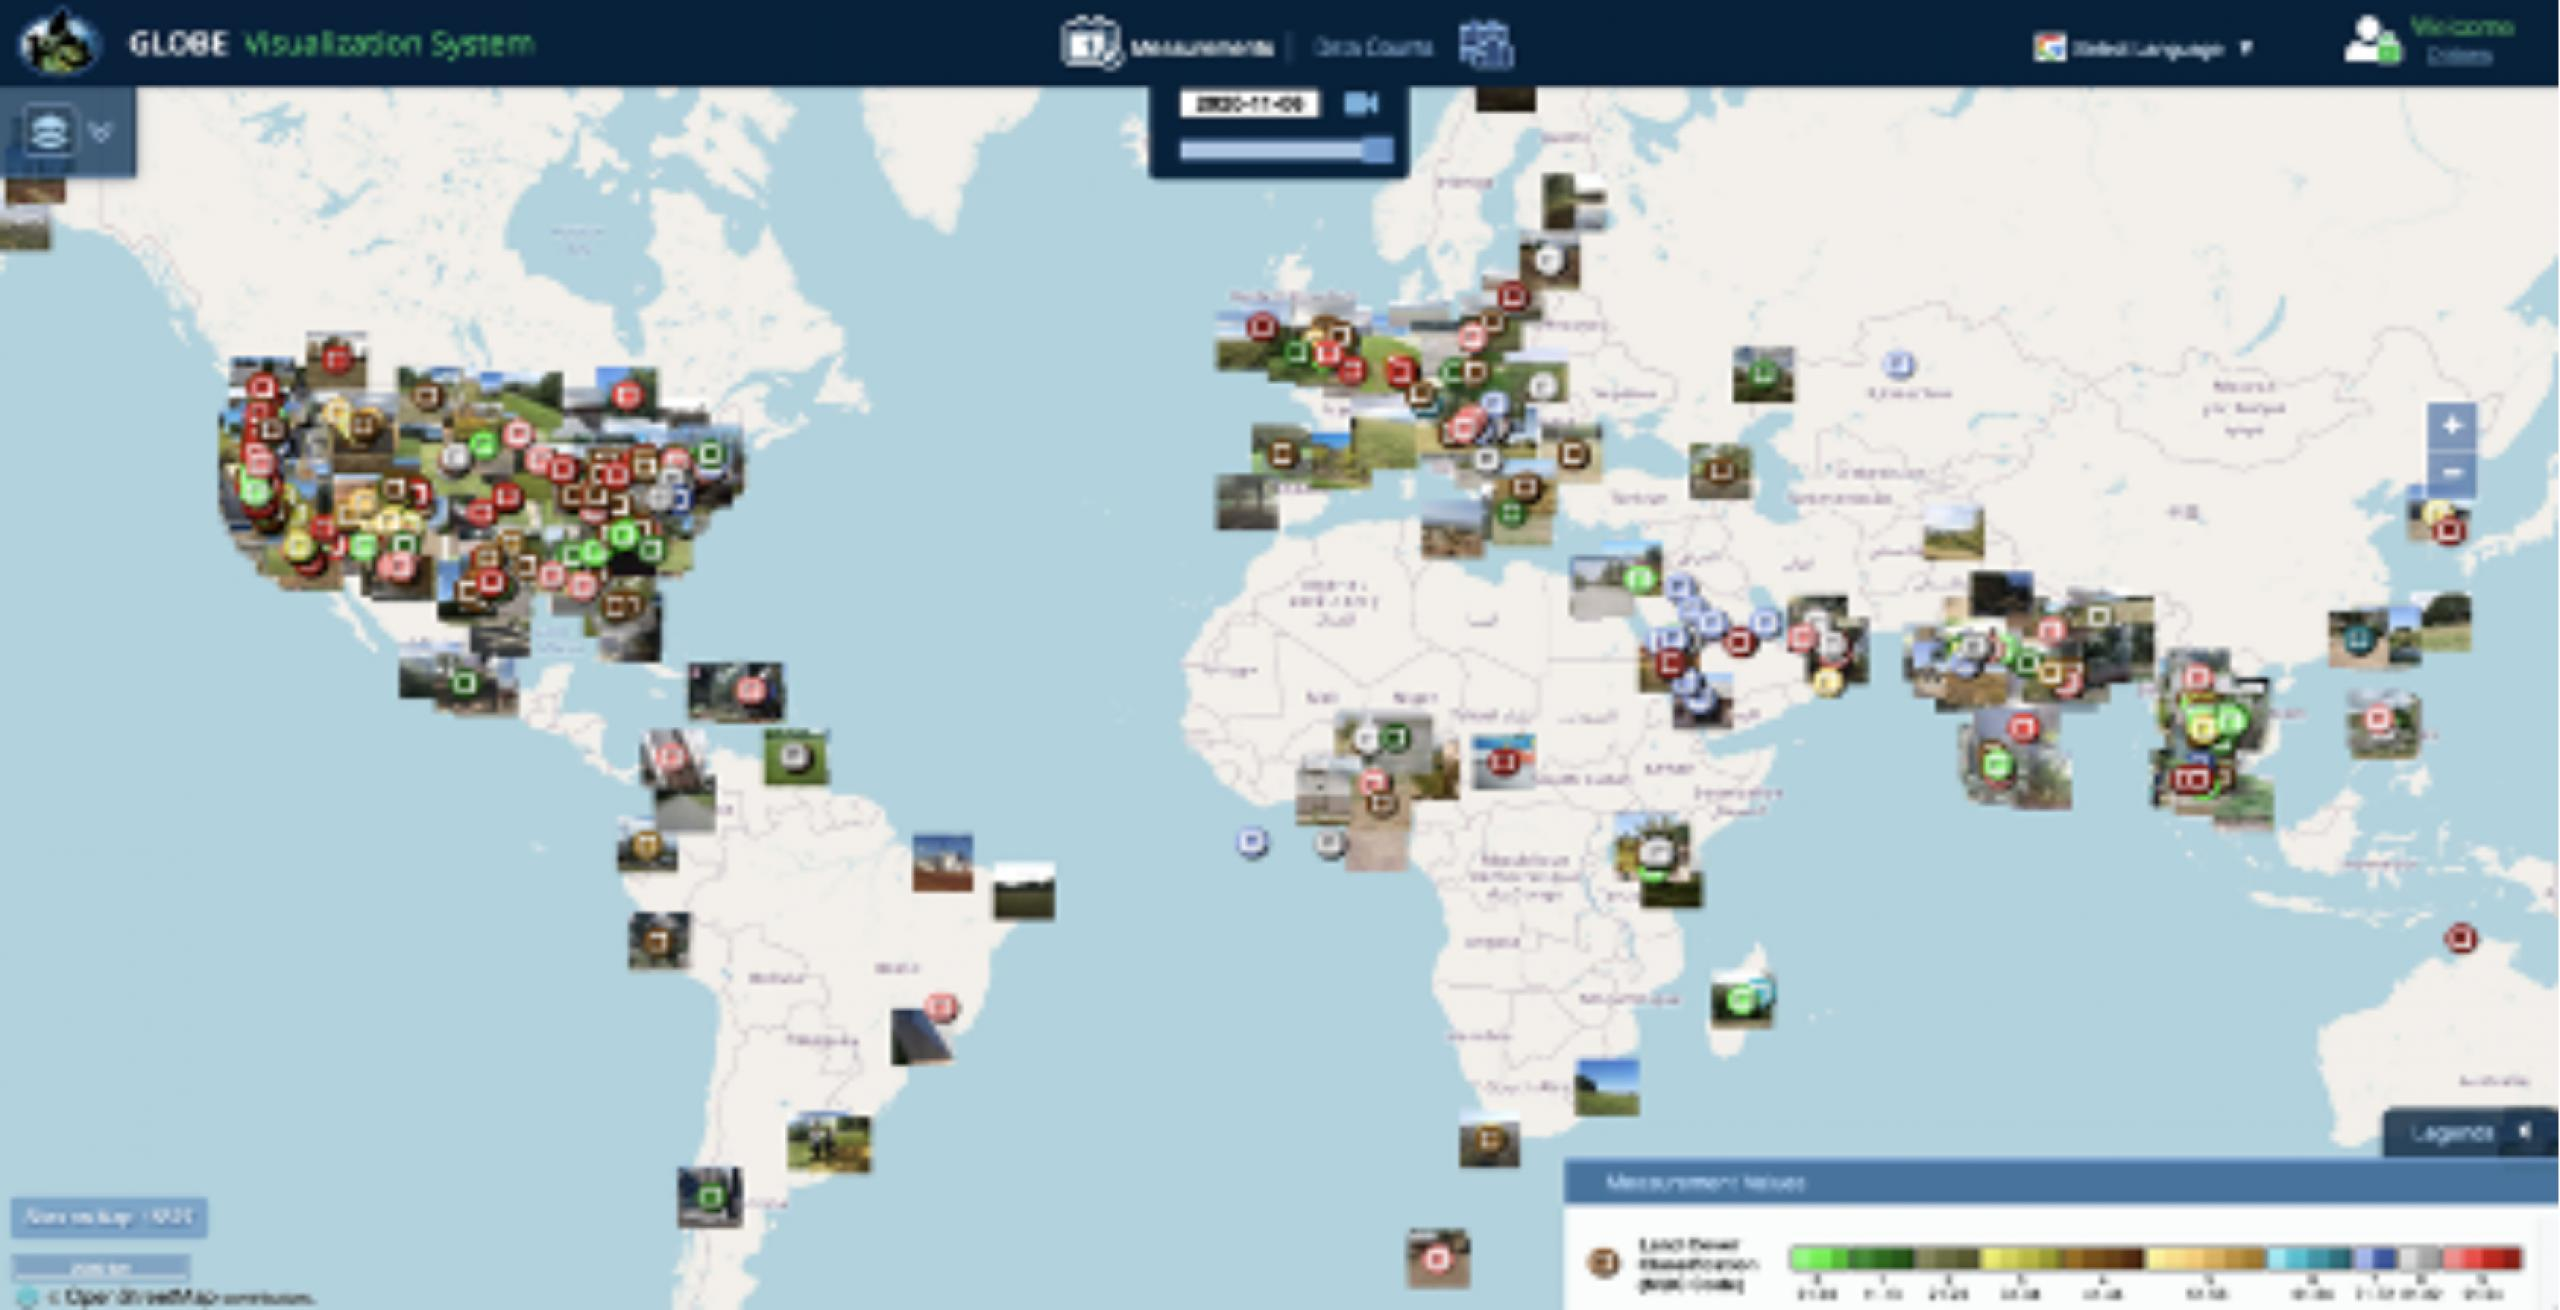 Screenshot of world map with thumbnail images overlaid